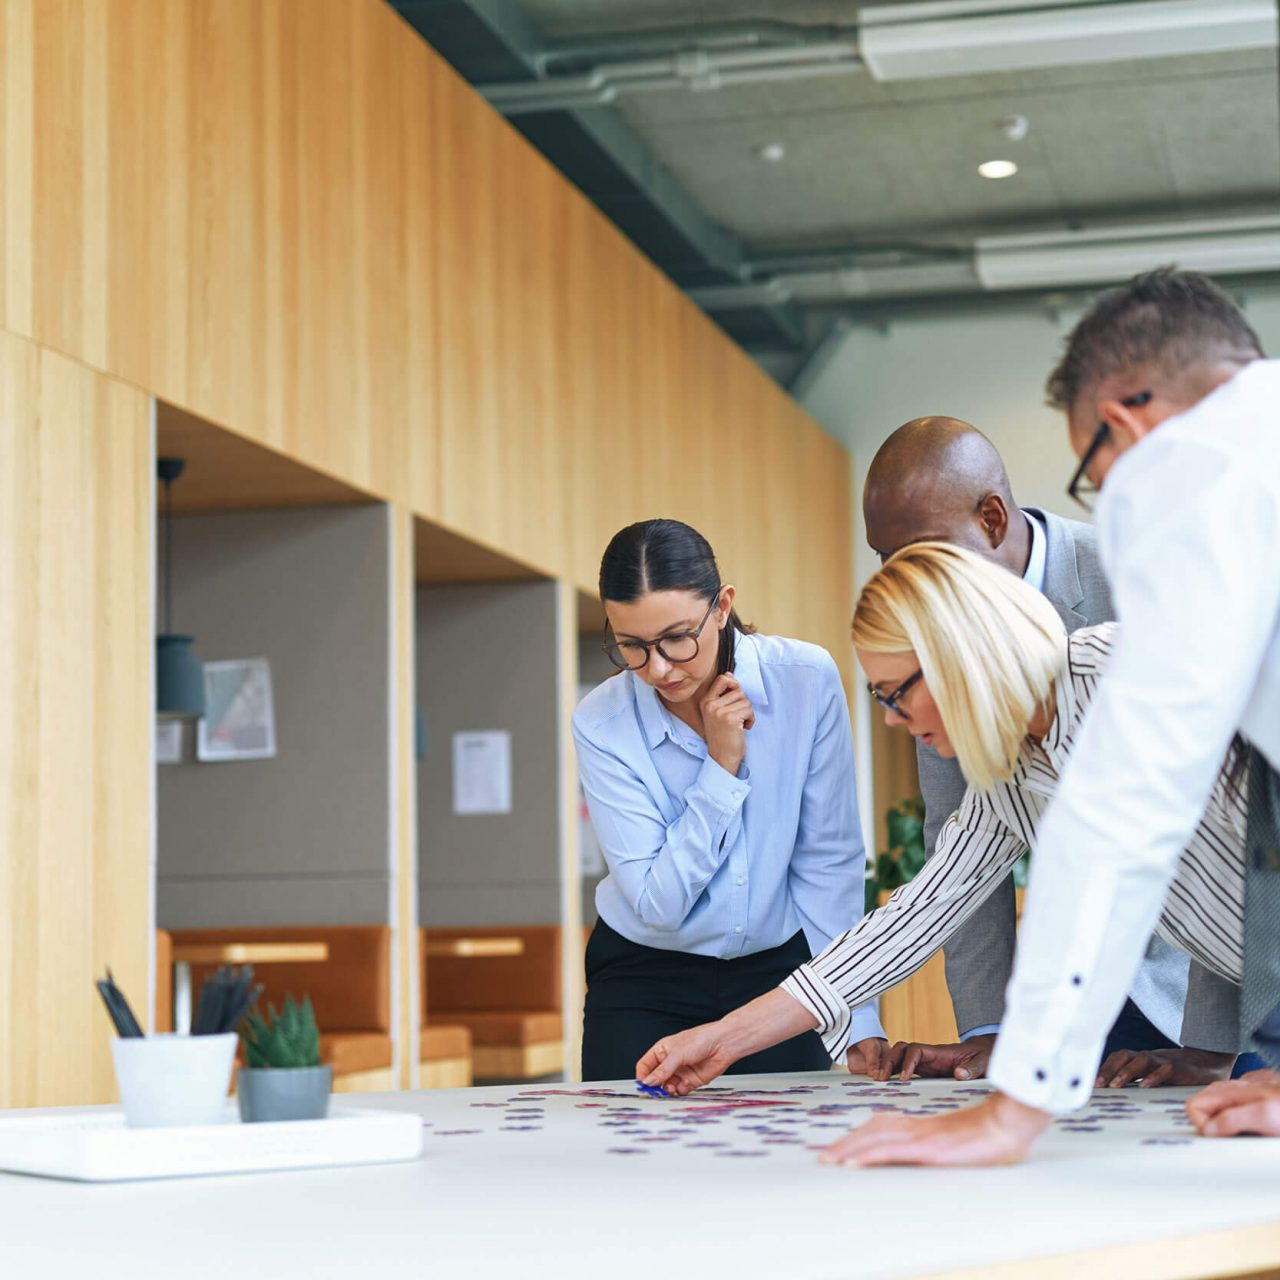 Redesigning an Intranet Site Improves Employee Experience